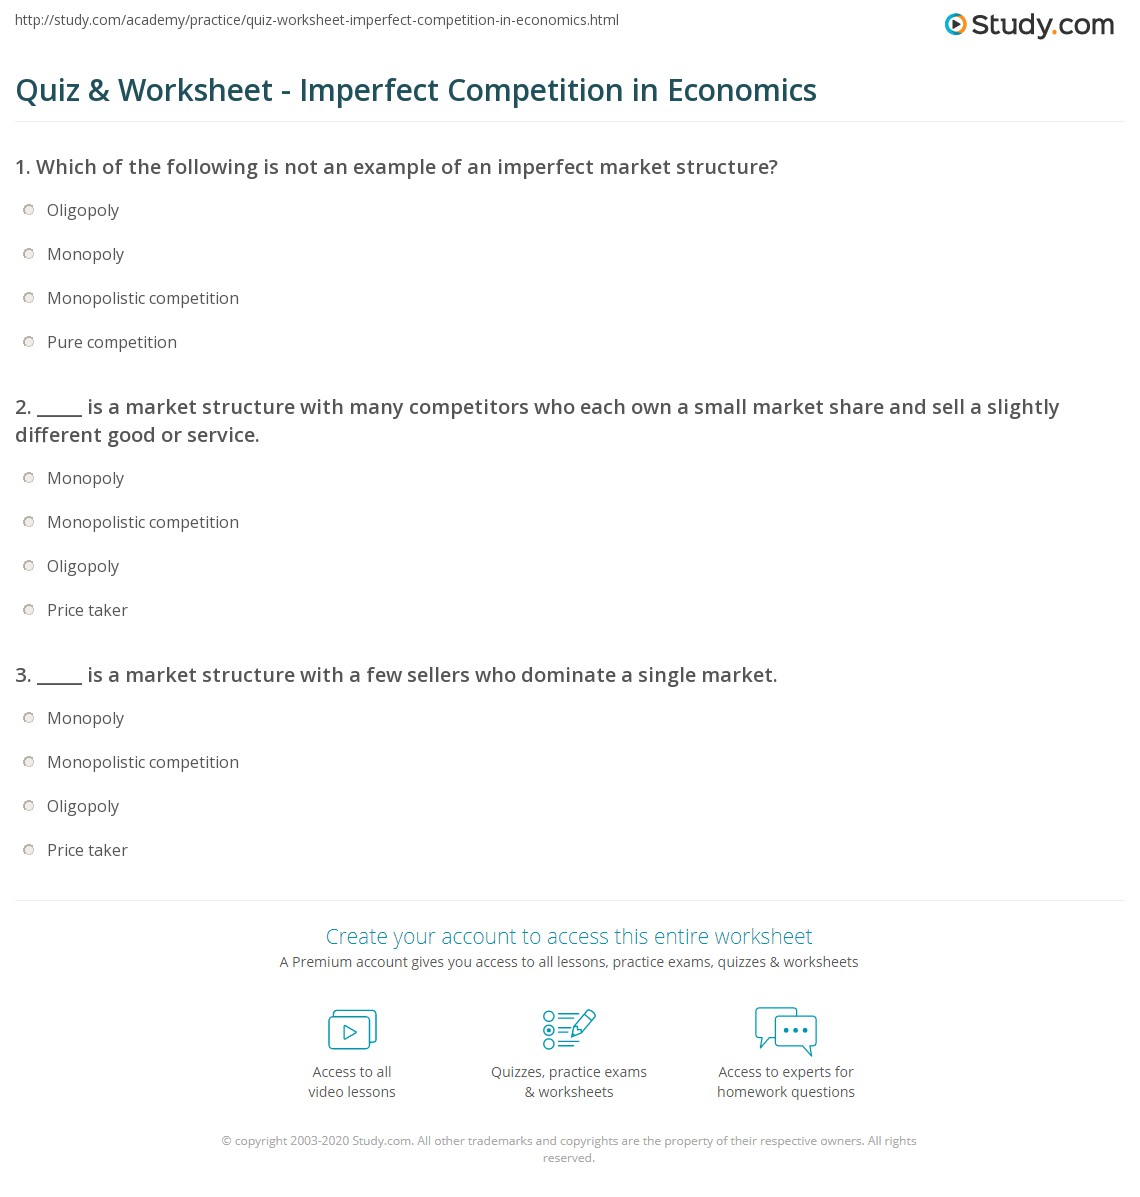 quiz worksheet imperfect competition in economics. Black Bedroom Furniture Sets. Home Design Ideas